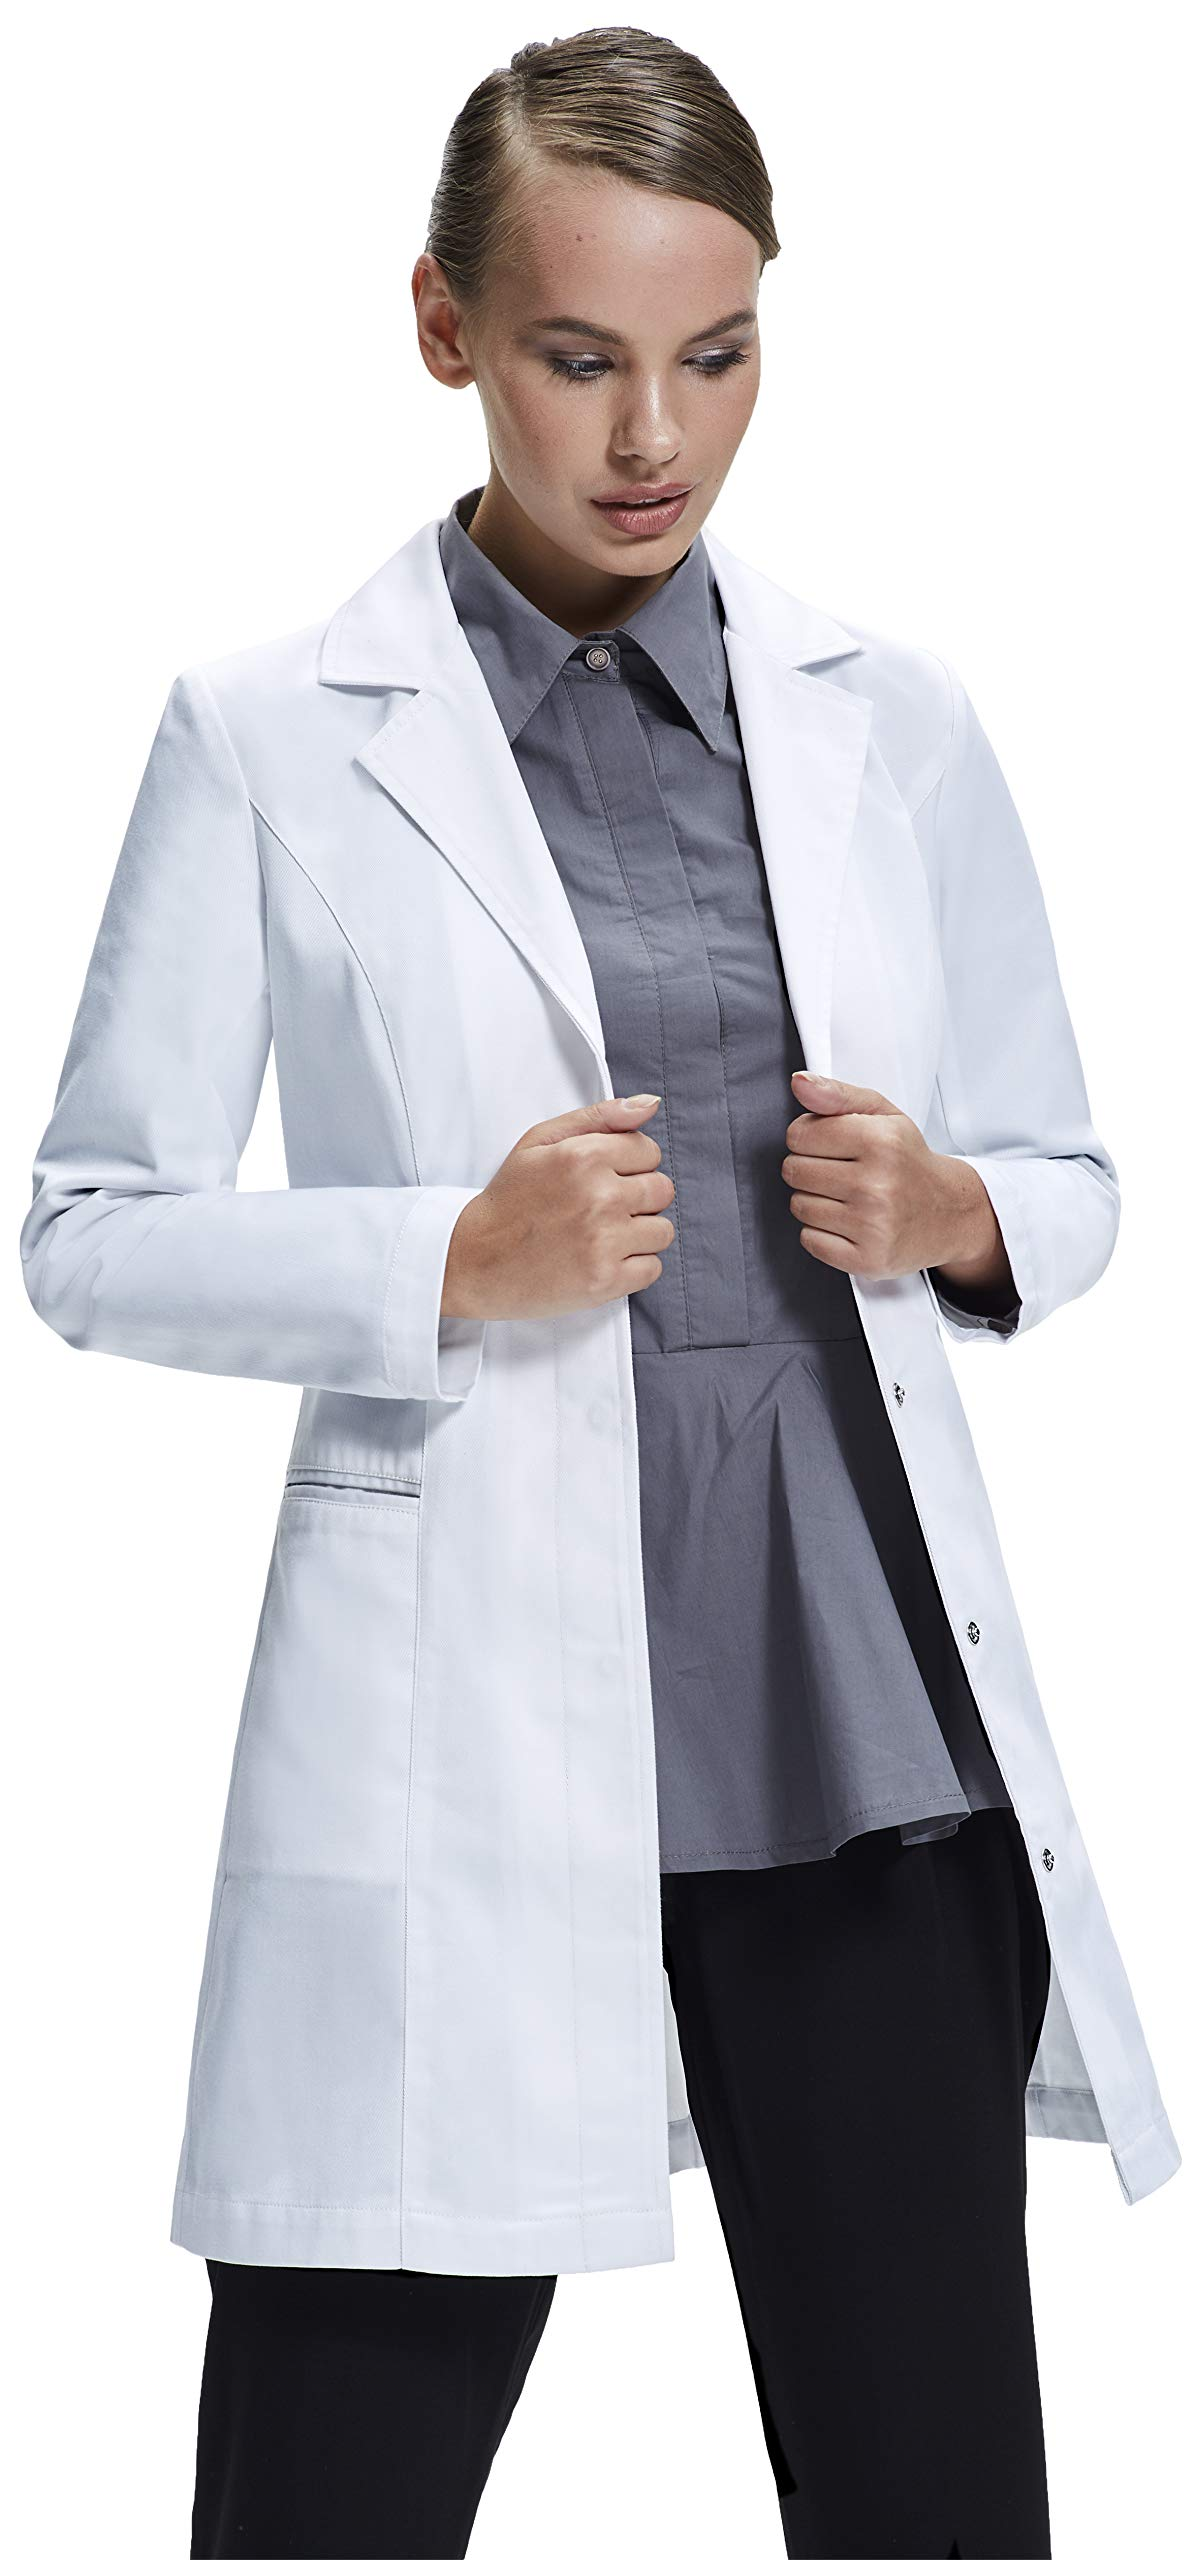 Dr. James Stylish Tailored Fit Lab Coat for Petite Women • 34 Inch Length US 10 US-18-E